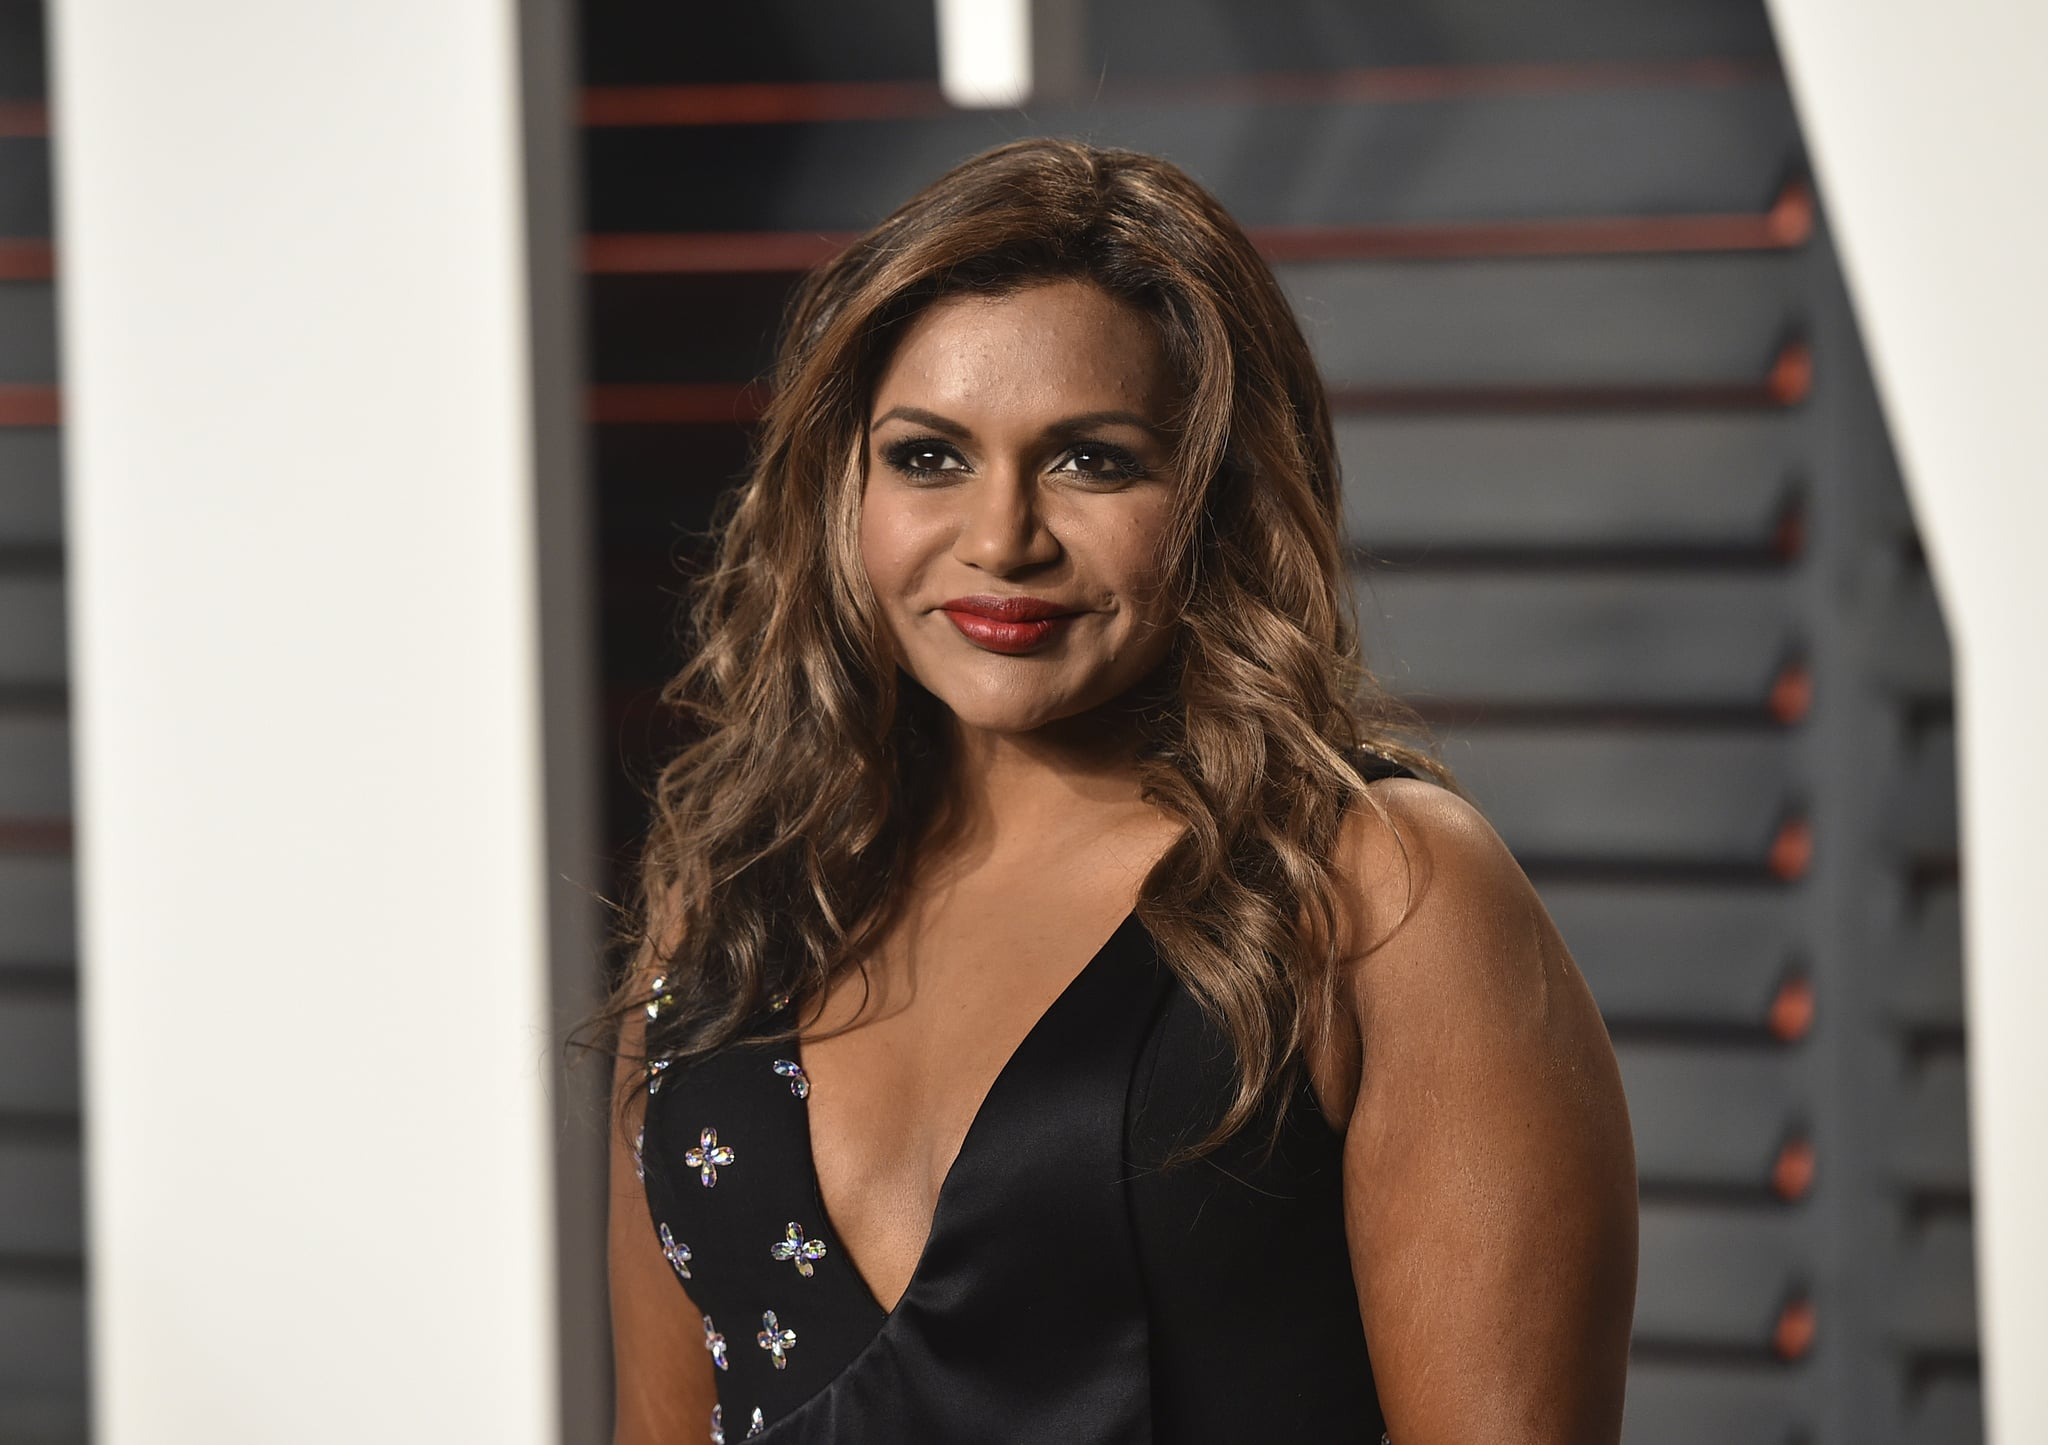 BEVERLY HILLS, CA - FEBRUARY 28:  Actress Mindy Kaling arrives at the 2016 Vanity Fair Oscar Party Hosted By Graydon Carter at Wallis Annenberg Center for the Performing Arts on February 28, 2016 in Beverly Hills, California.  (Photo by John Shearer/Getty Images)